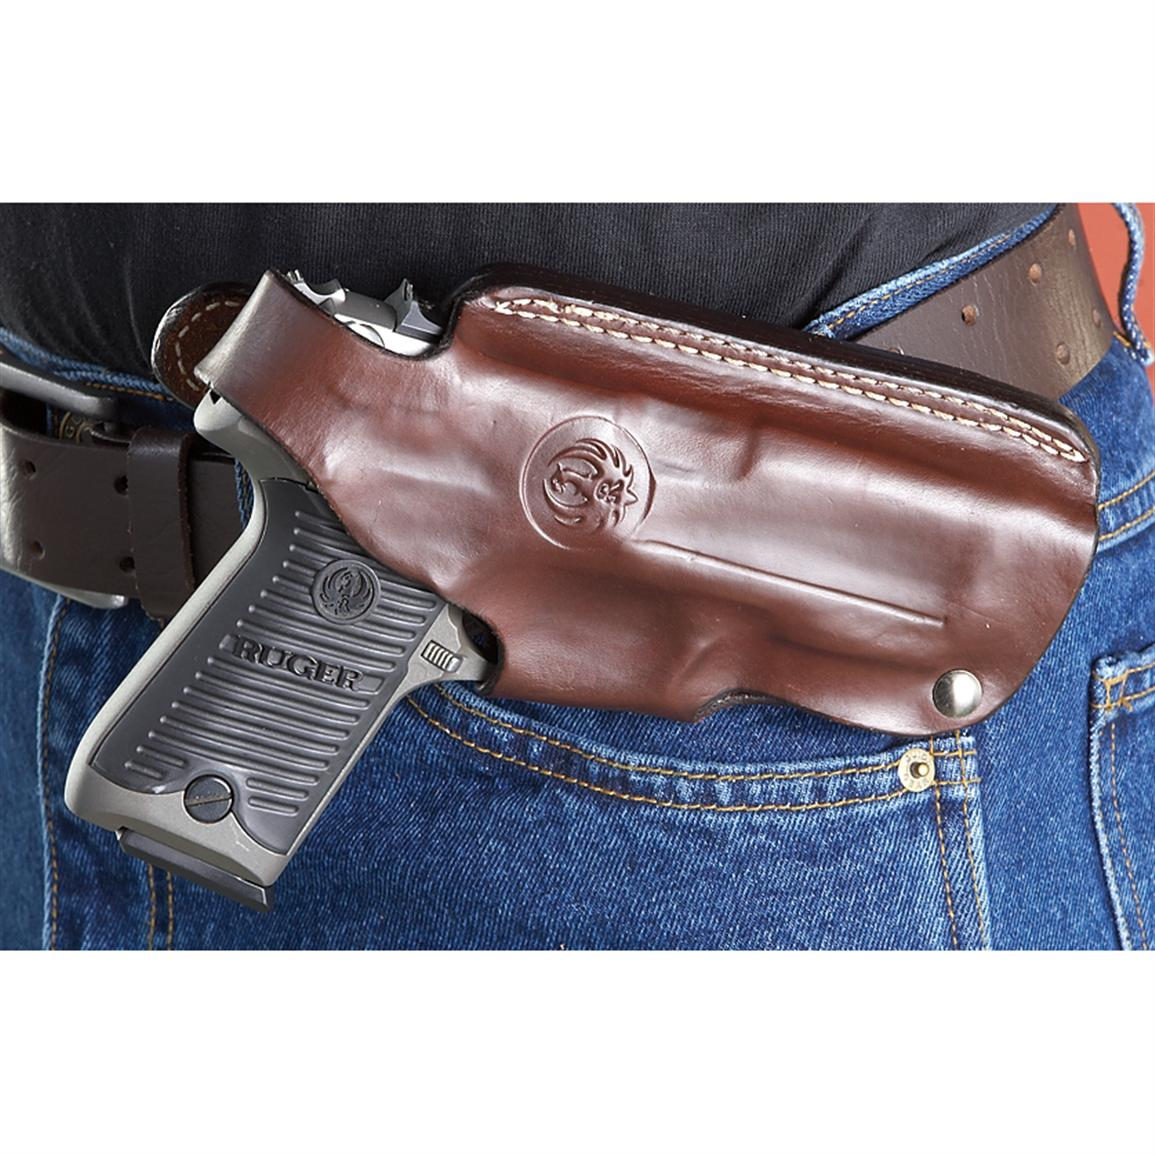 Ruger® 4-position Holster, Brown - 186317, Holsters at Sportsman's Guide